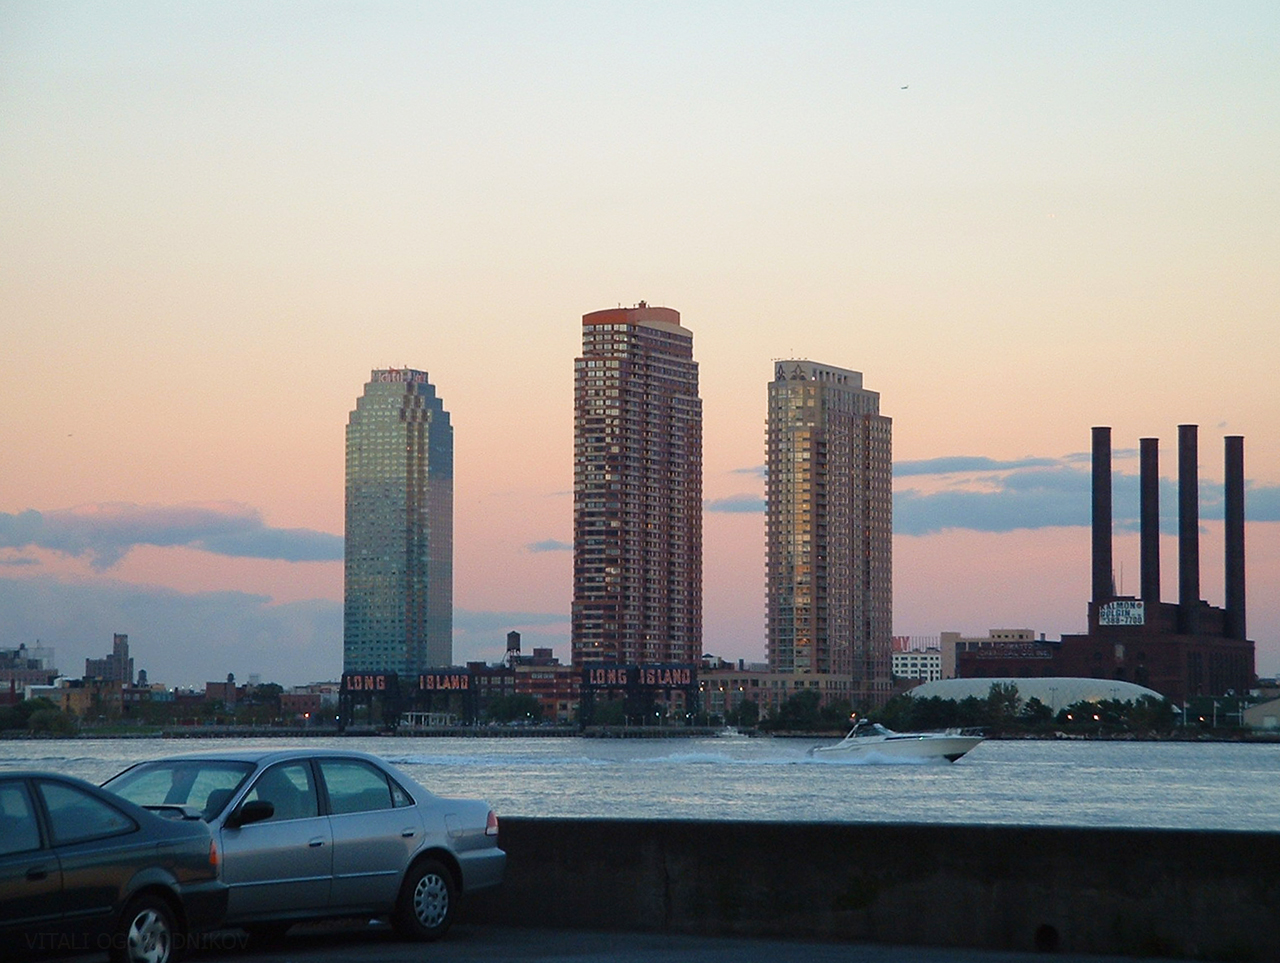 Long Island City skyline in the foreground. October 2003. Left to right: One Court Square, Citylights, Avalon Riverview, and the former Hunters Point Power Plant.